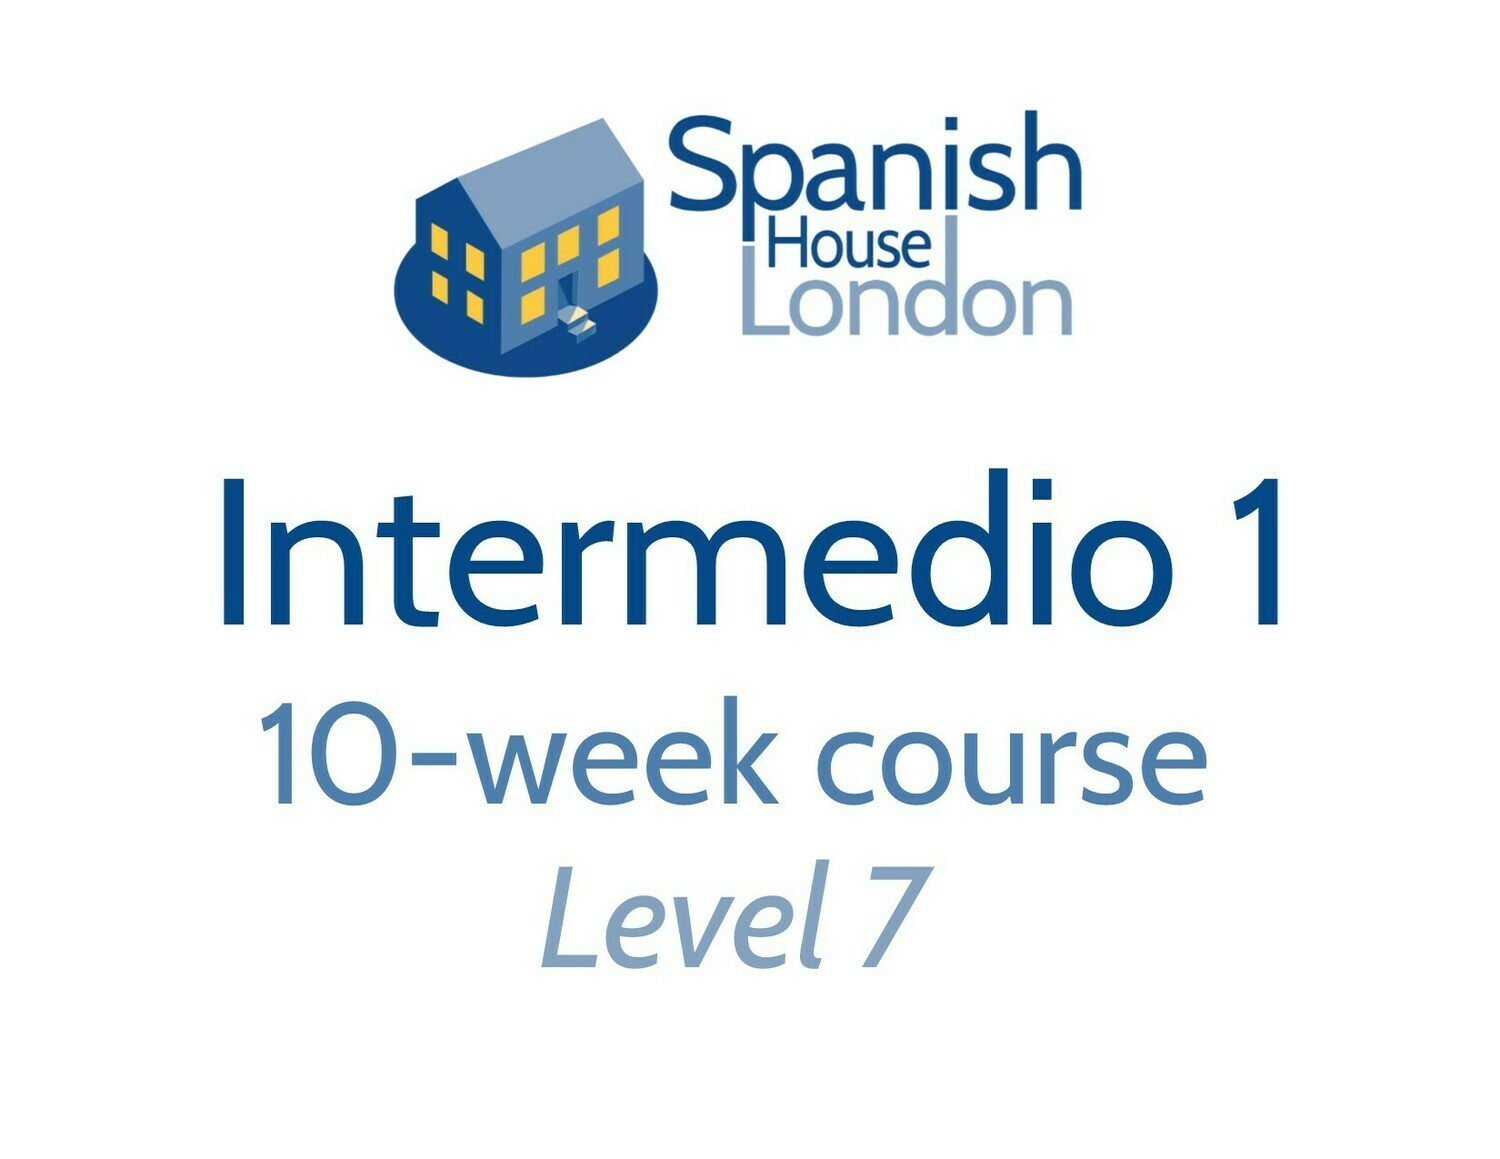 Intermedio 1 Course starting on 22nd October at 6pm in Euston